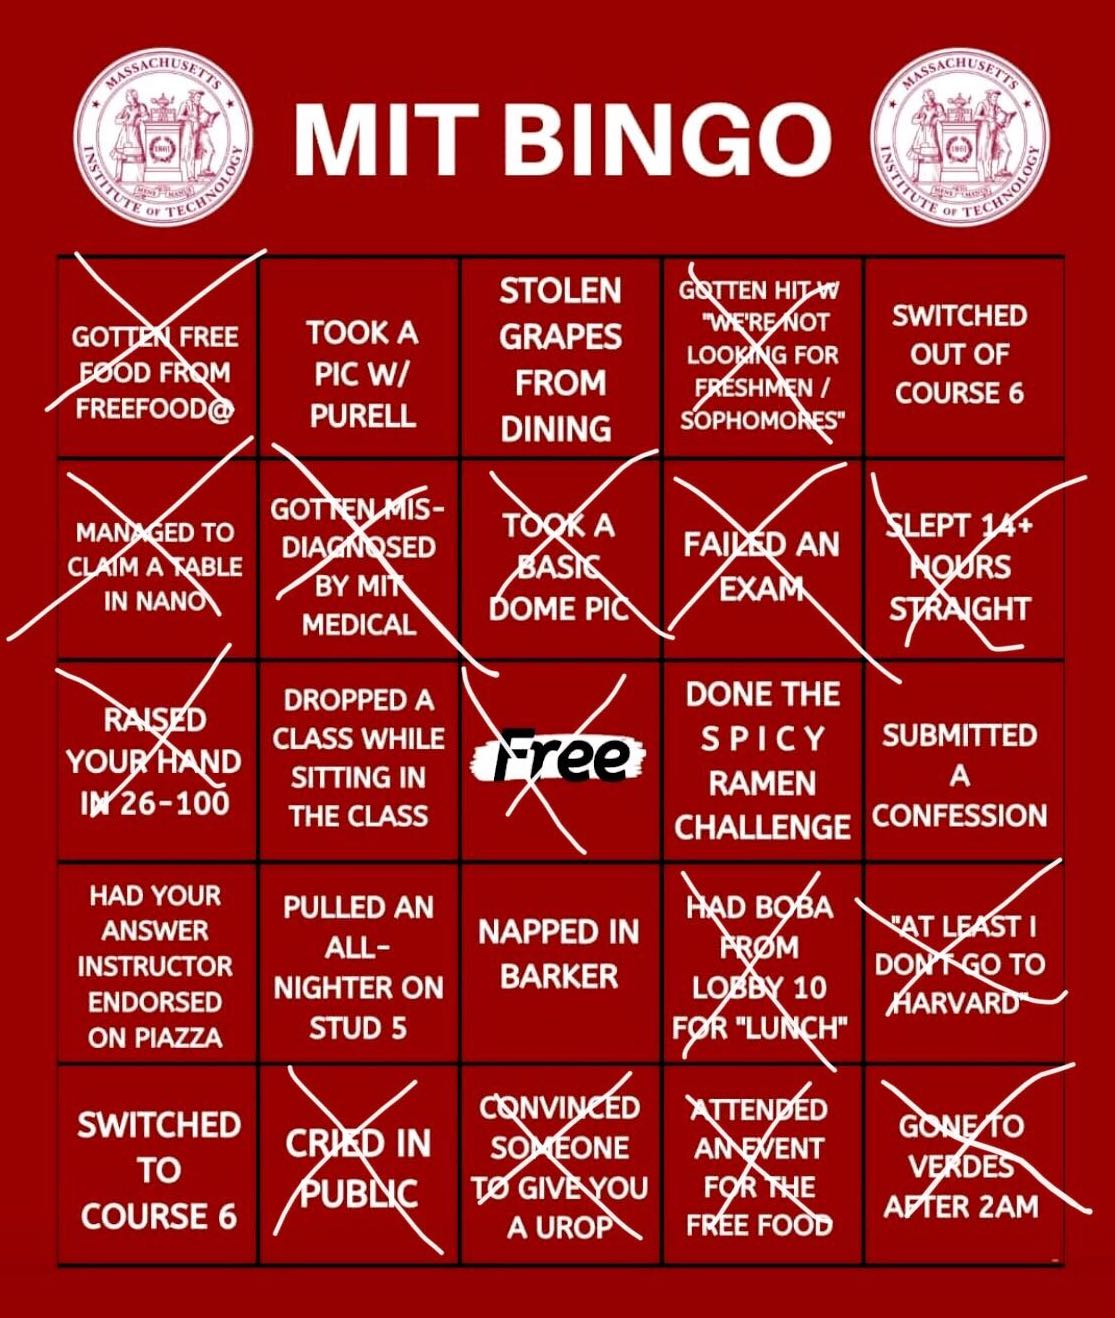 "Nisha's red bingo. She got bingo on: ""gotten free food from freefood@"", ""gotten misdiagnosed by MIT Medical"", ""free space"", ""had boba from lobby 10 for ""lunch"""", and ""gone to verdes after 2am"". She also got another bingo on ""managed to claim a table in nano"", ""gotten misdiagnosed by MIT Medical"", ""took a basic dome pic"", ""failed an exam"", and ""slept 14+ hours straight""."